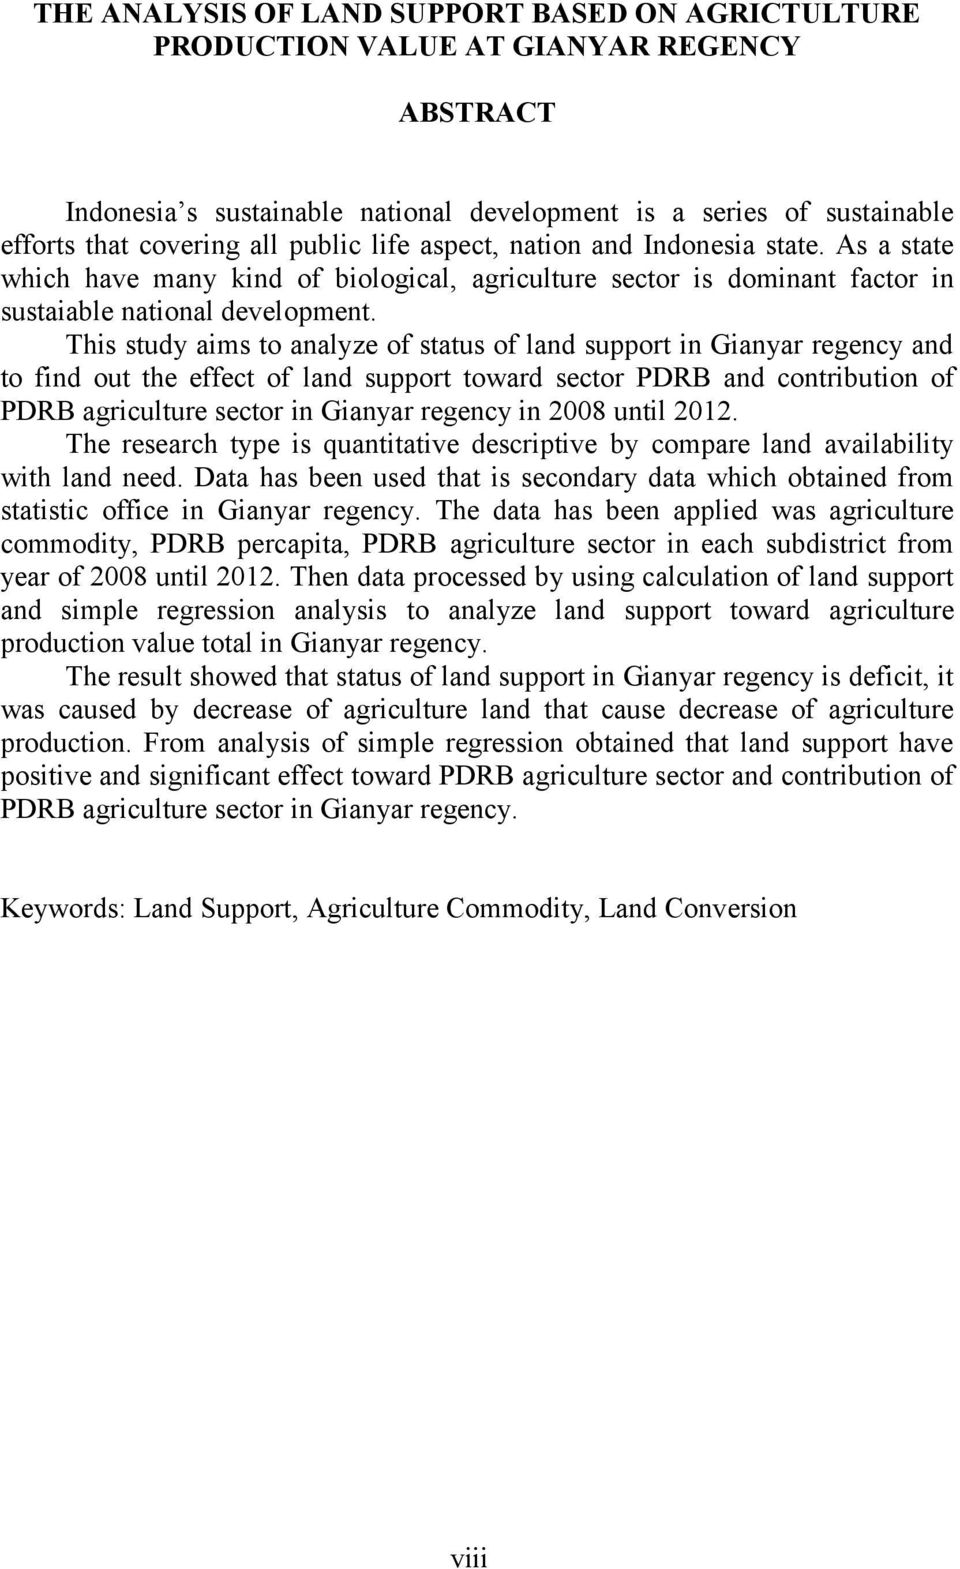 This study aims to analyze of status of land support in Gianyar regency and to find out the effect of land support toward sector PDRB and contribution of PDRB agriculture sector in Gianyar regency in